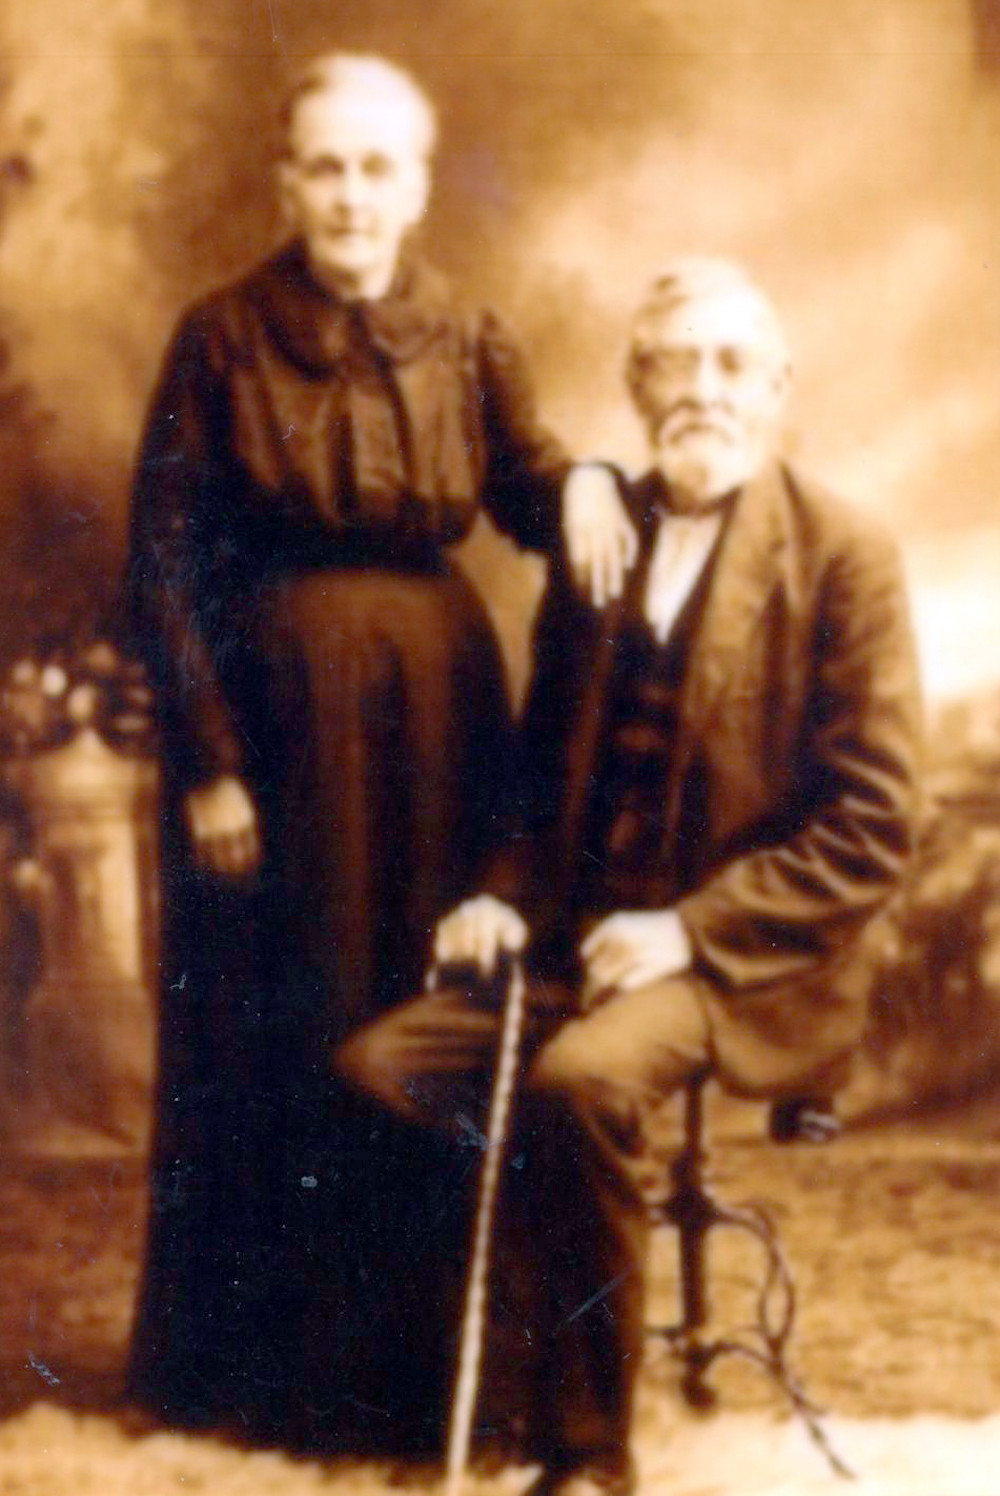 Jim Brown shared a photo of his great-grandparents. This is Henry Kitzmiller Brown and wife, Elizabeth Thompson Brown. He served in Neal's 16th Battalion Tennessee Confederate Cavalry, Company E.